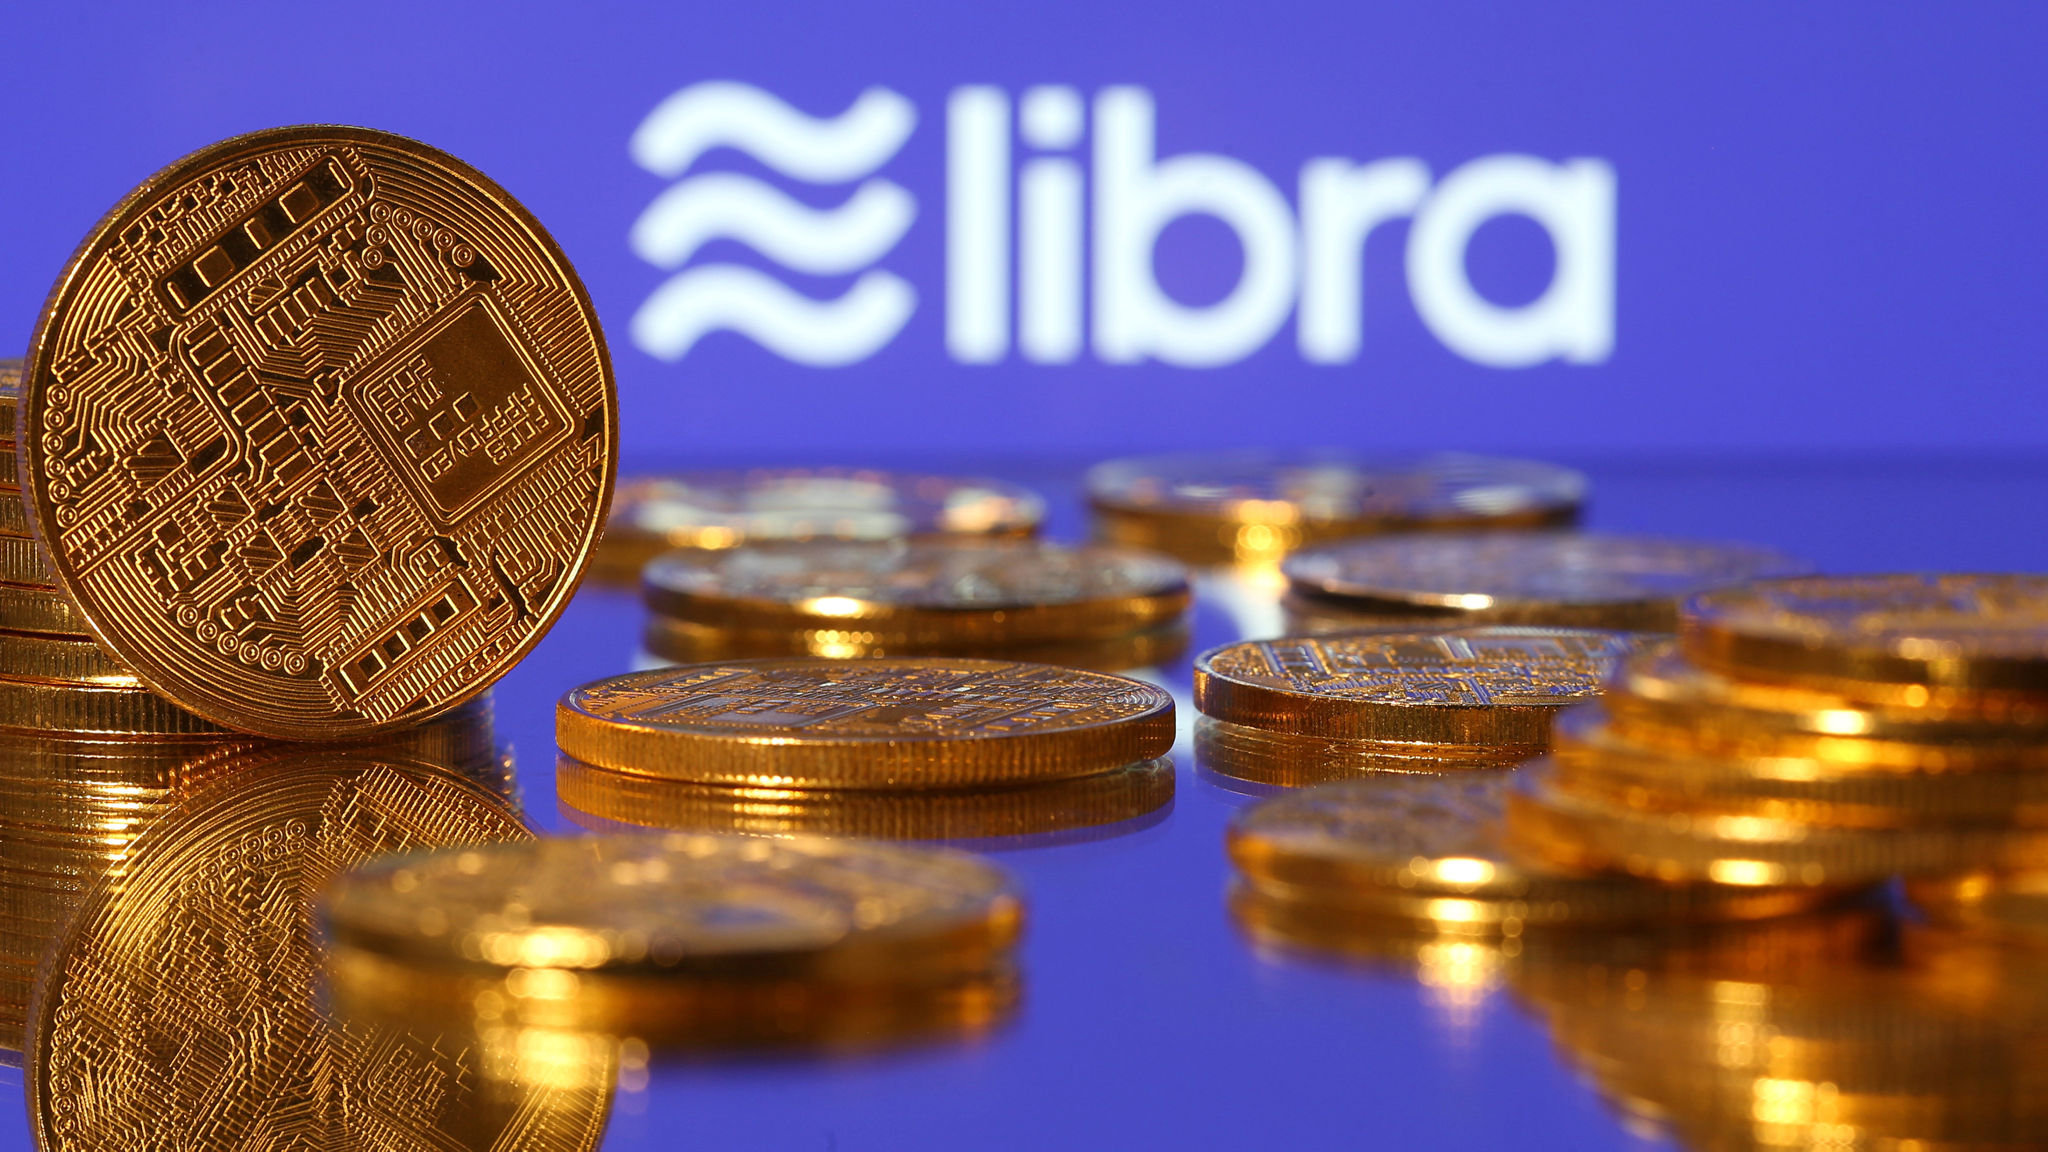 Global regulators put pressure on Libra with enhanced scrutiny